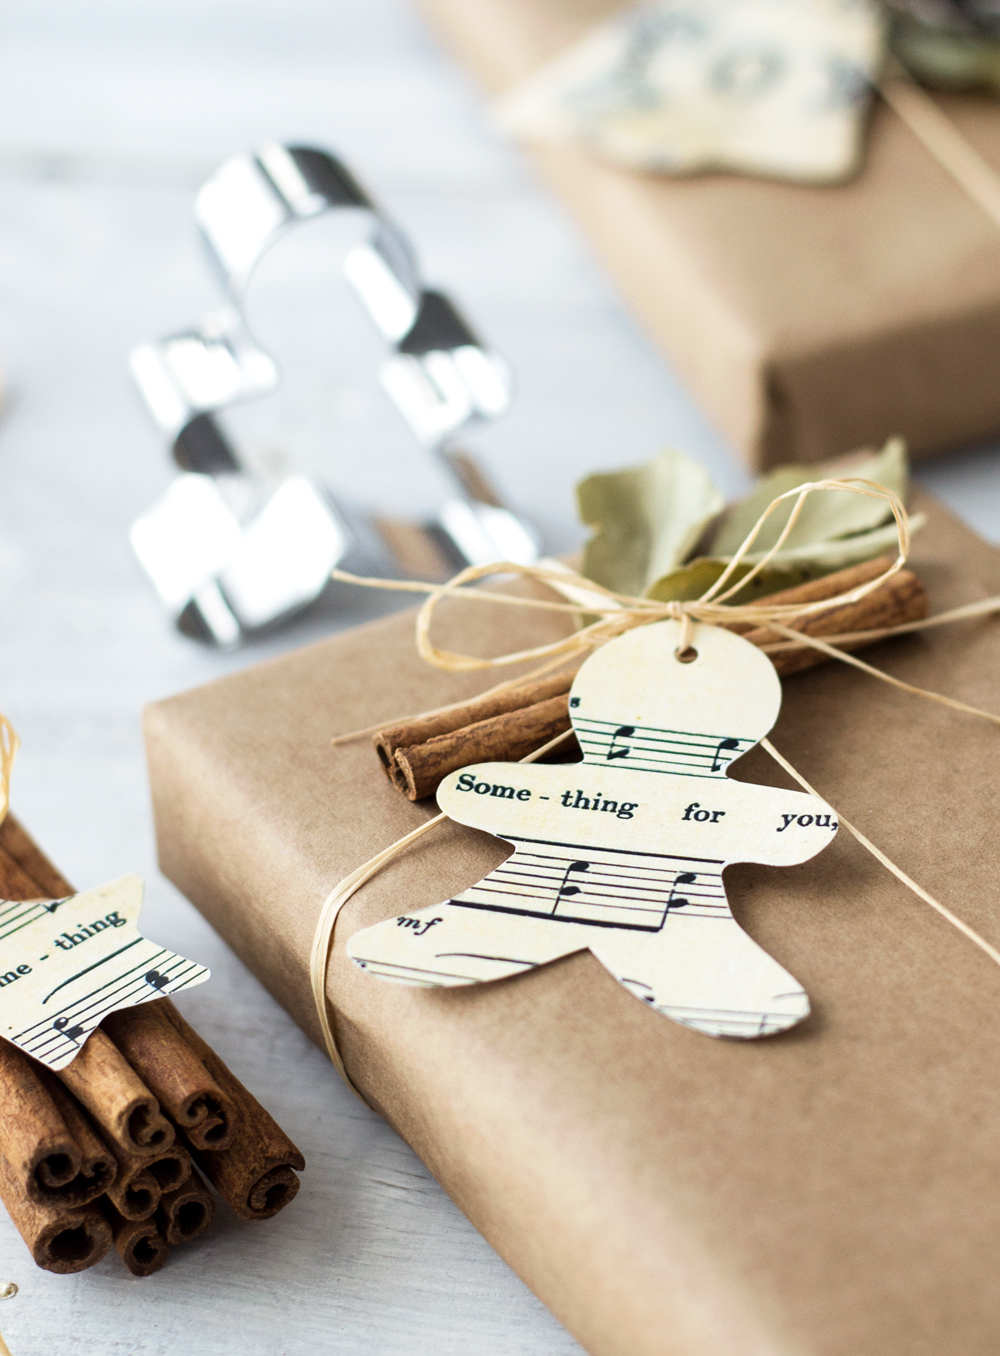 DIY Cookie Cutter Christmas Tags Project - free templates